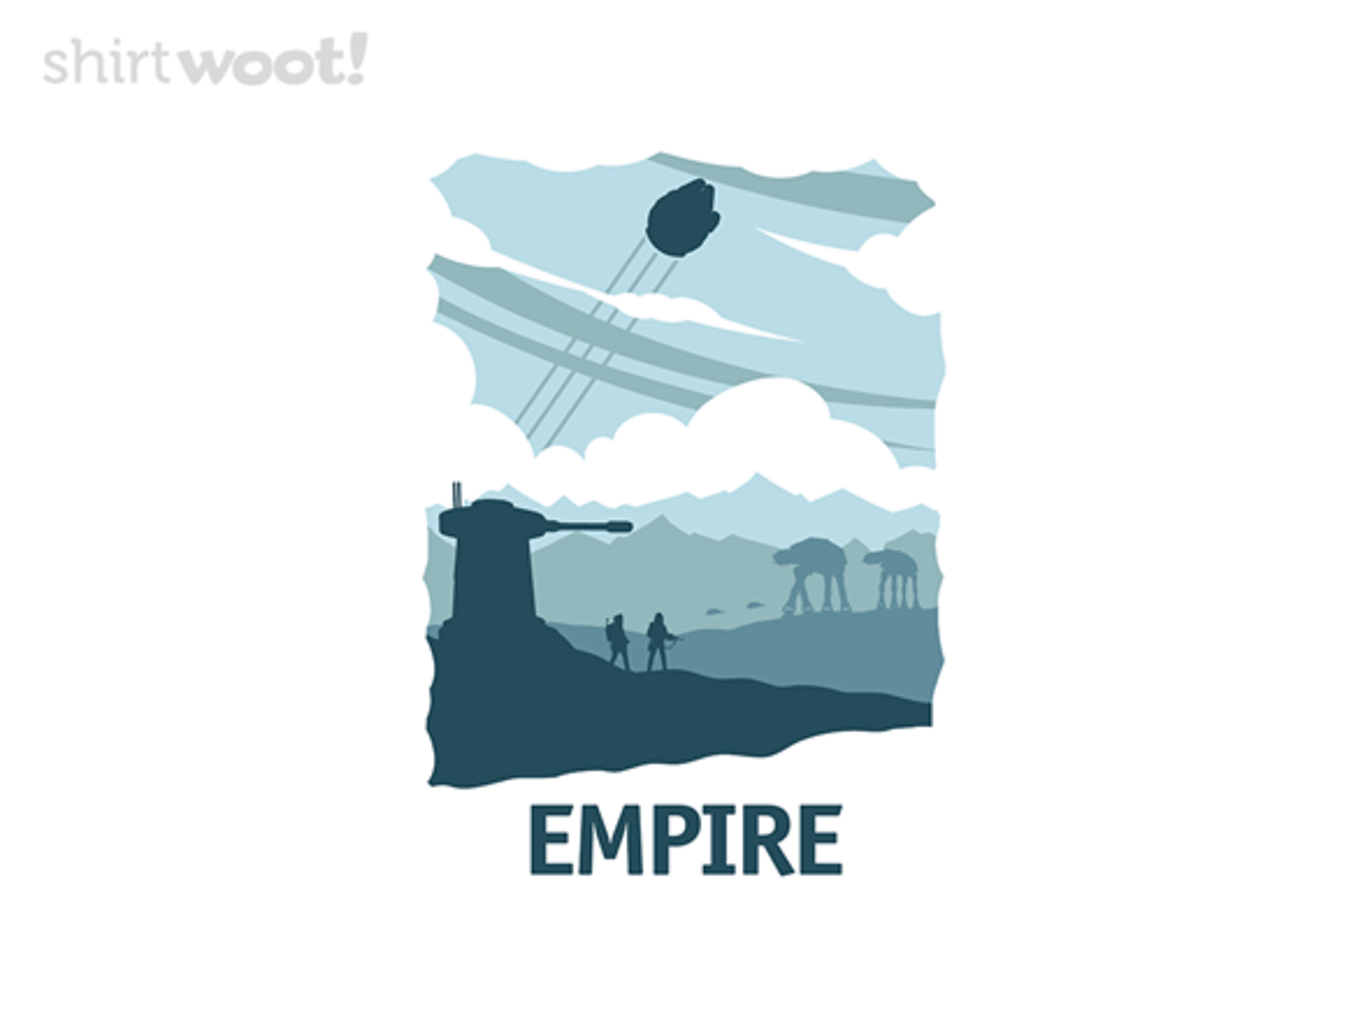 Woot!: Empire - $15.00 + Free shipping